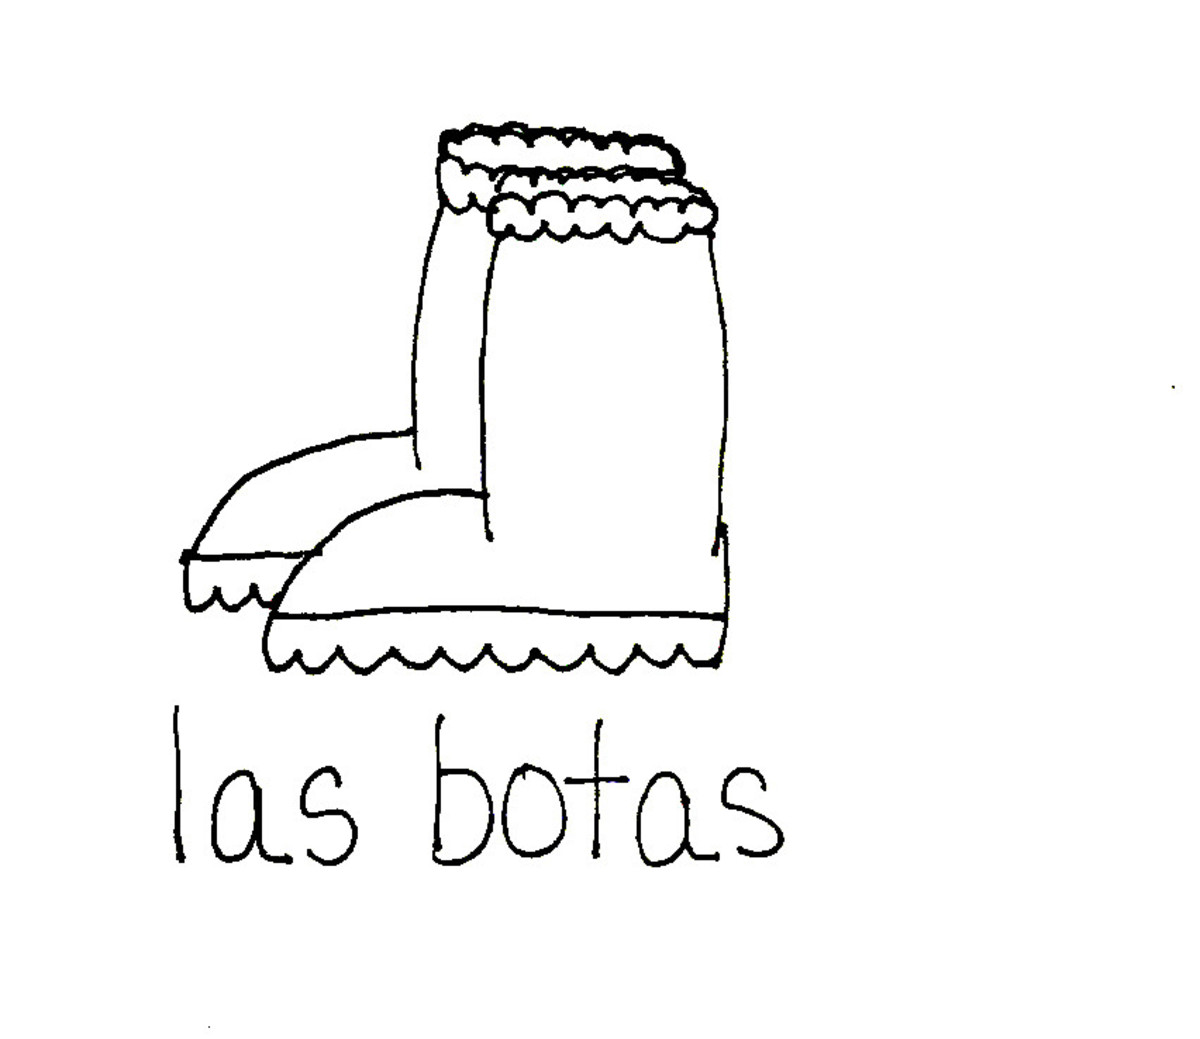 Boots in Spanish